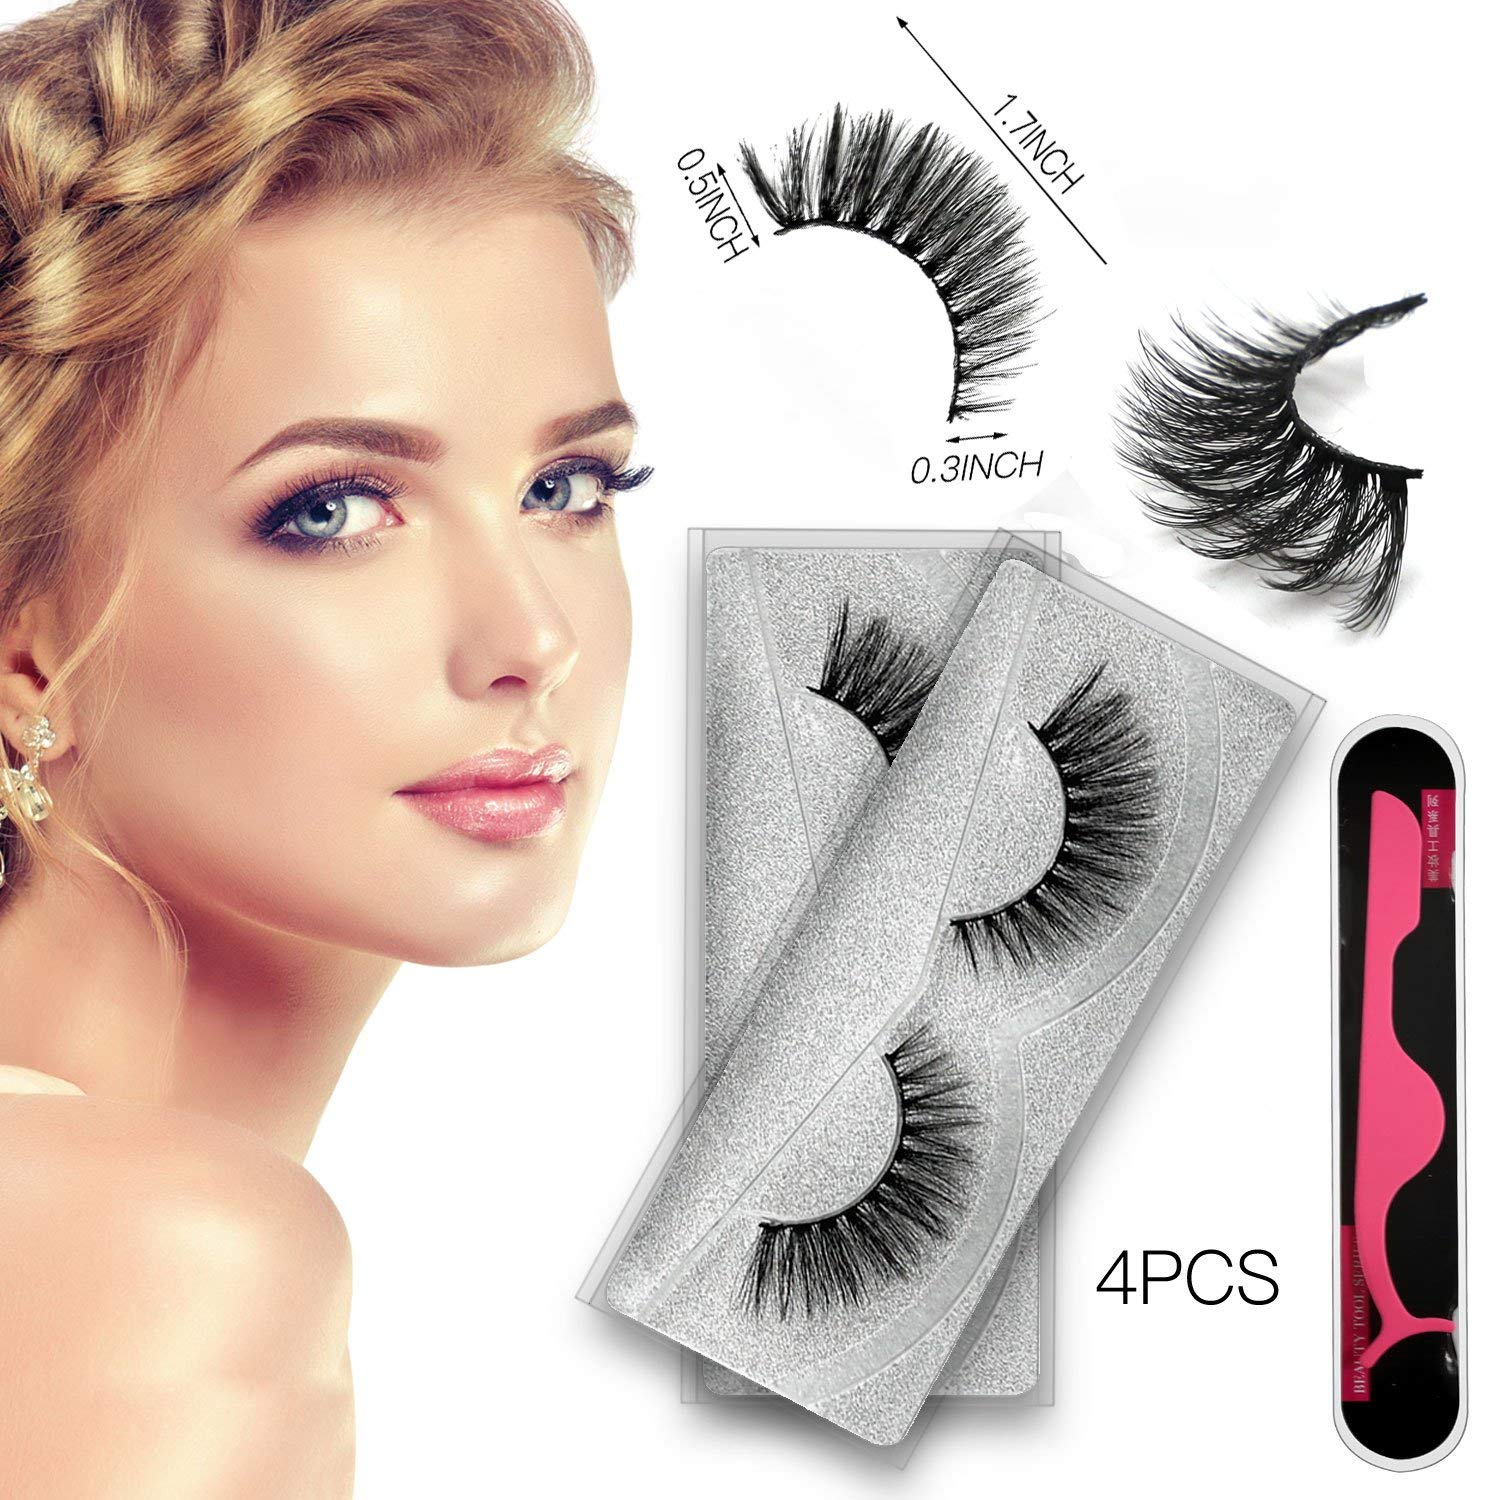 83b1adc4b09 3D Mink Eyelashes Extensions, 2 Box/2Pairs Reusable Fake Eyelashes Curler  Set, 100